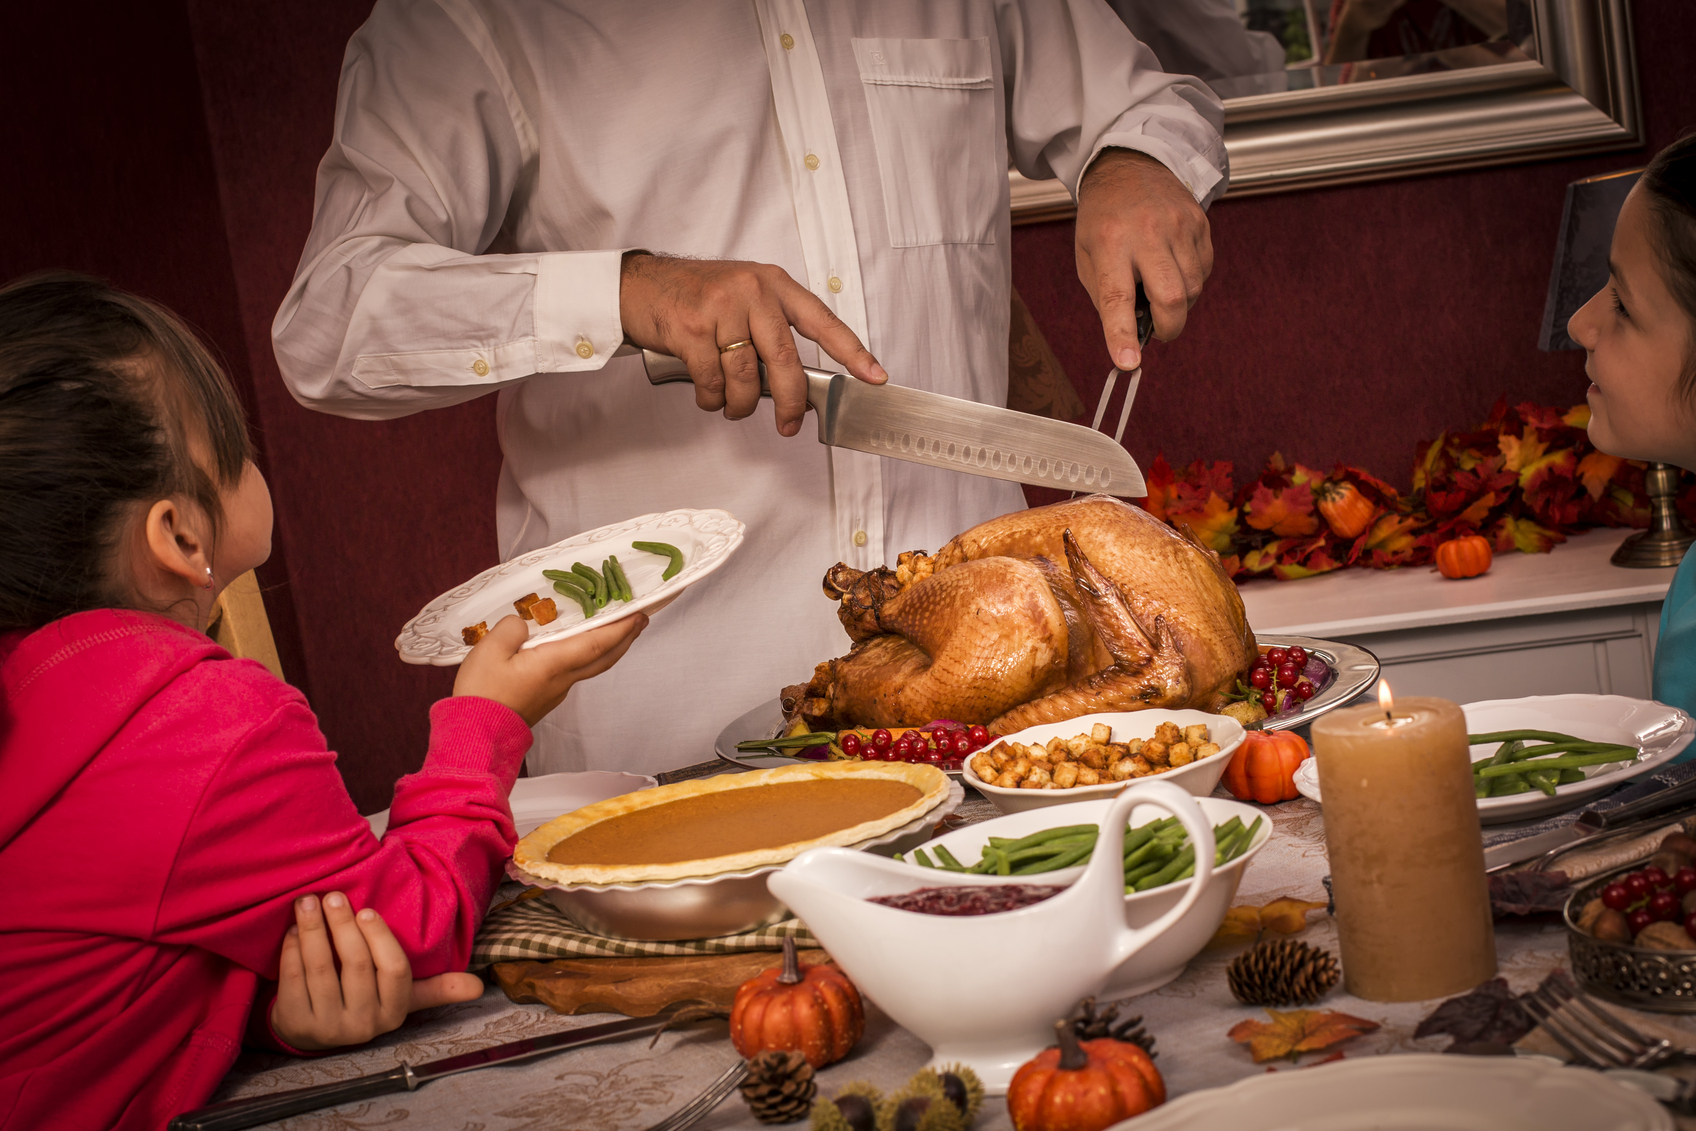 Let Thanksgiving Inspire More Family Meals